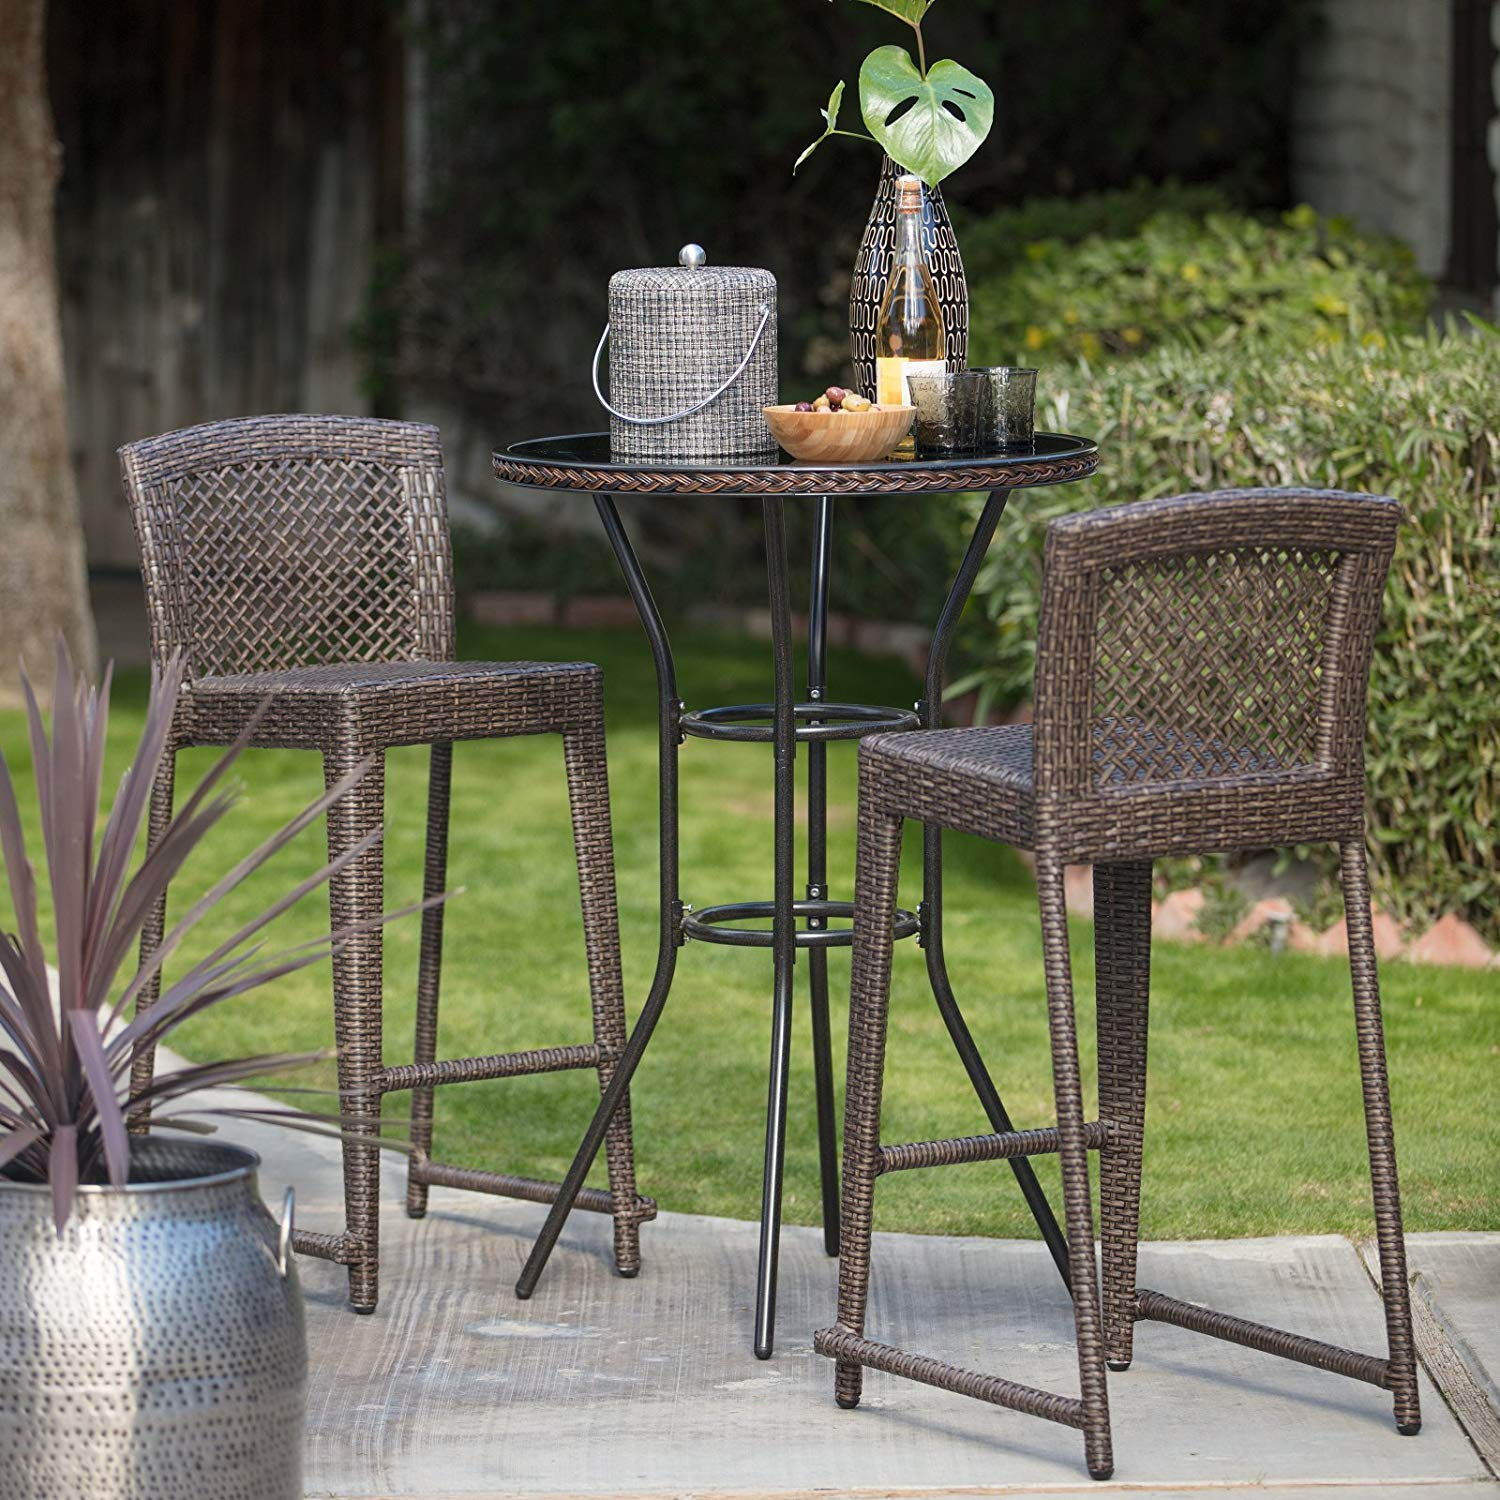 Outdoor Bistro Bar Set, Round Table Top And 2 Stools, All-Weather Wicker And Durable Steel Frame Construction, UV And Water Resistant, Suitable For Garden, Pool Area, Patio Furniture + Expert Guide